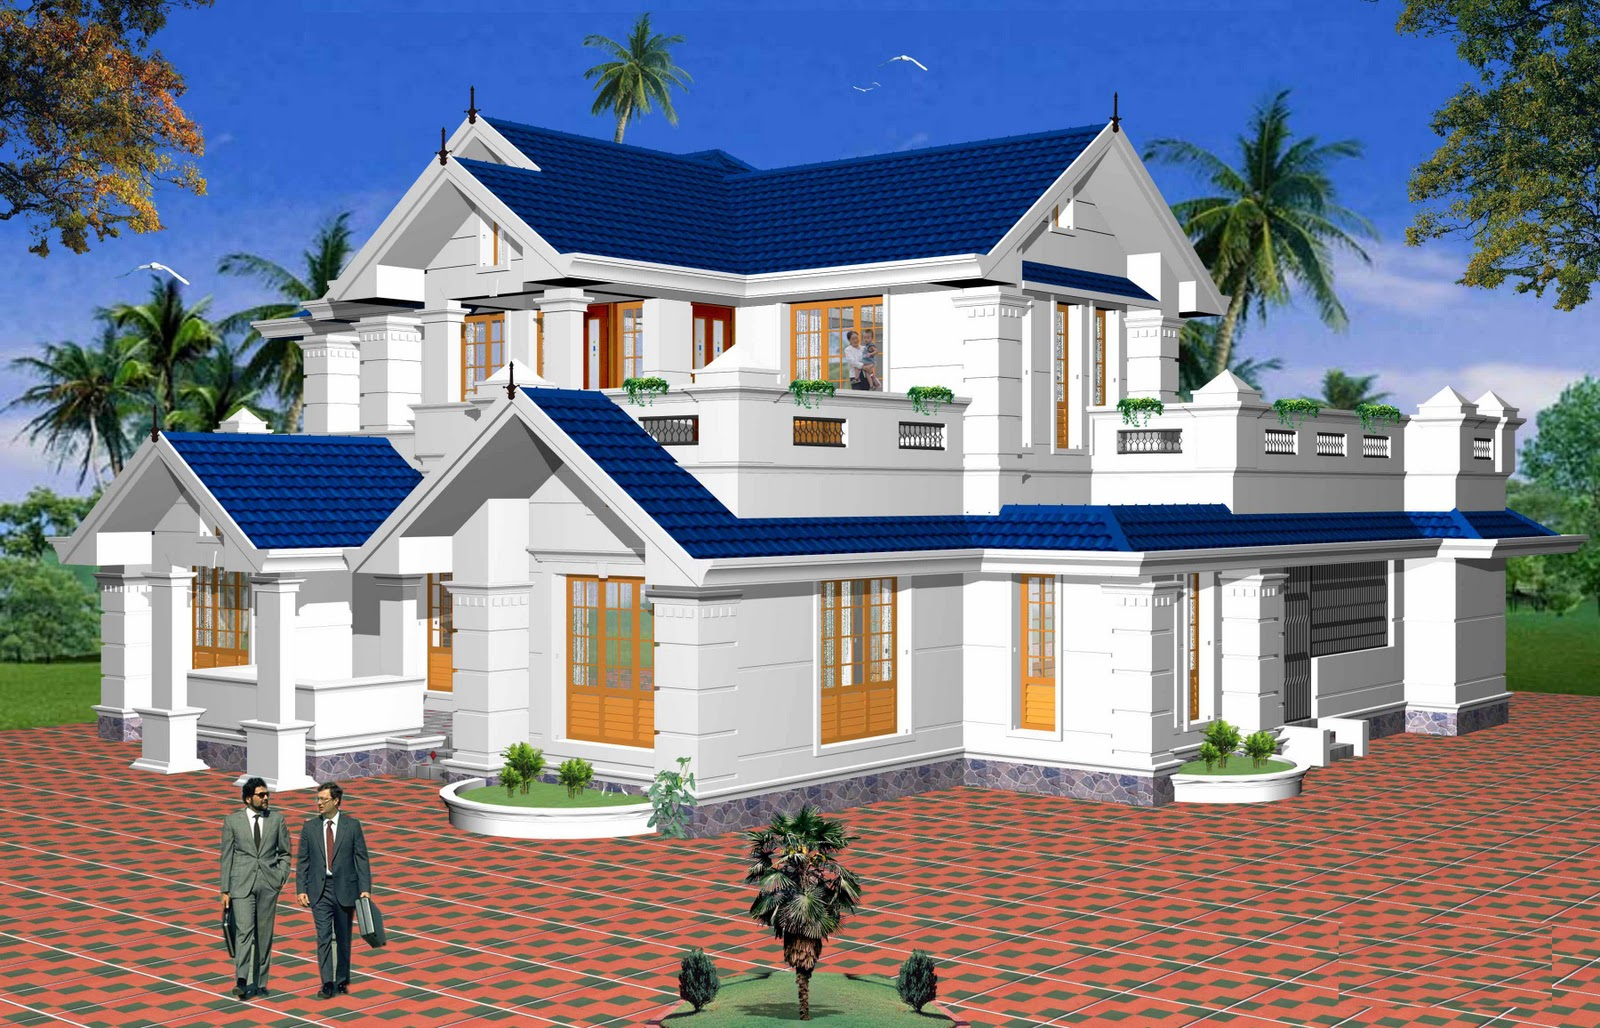 Remarkable Architectural Design Home House Plans 1600 x 1028 · 451 kB · jpeg